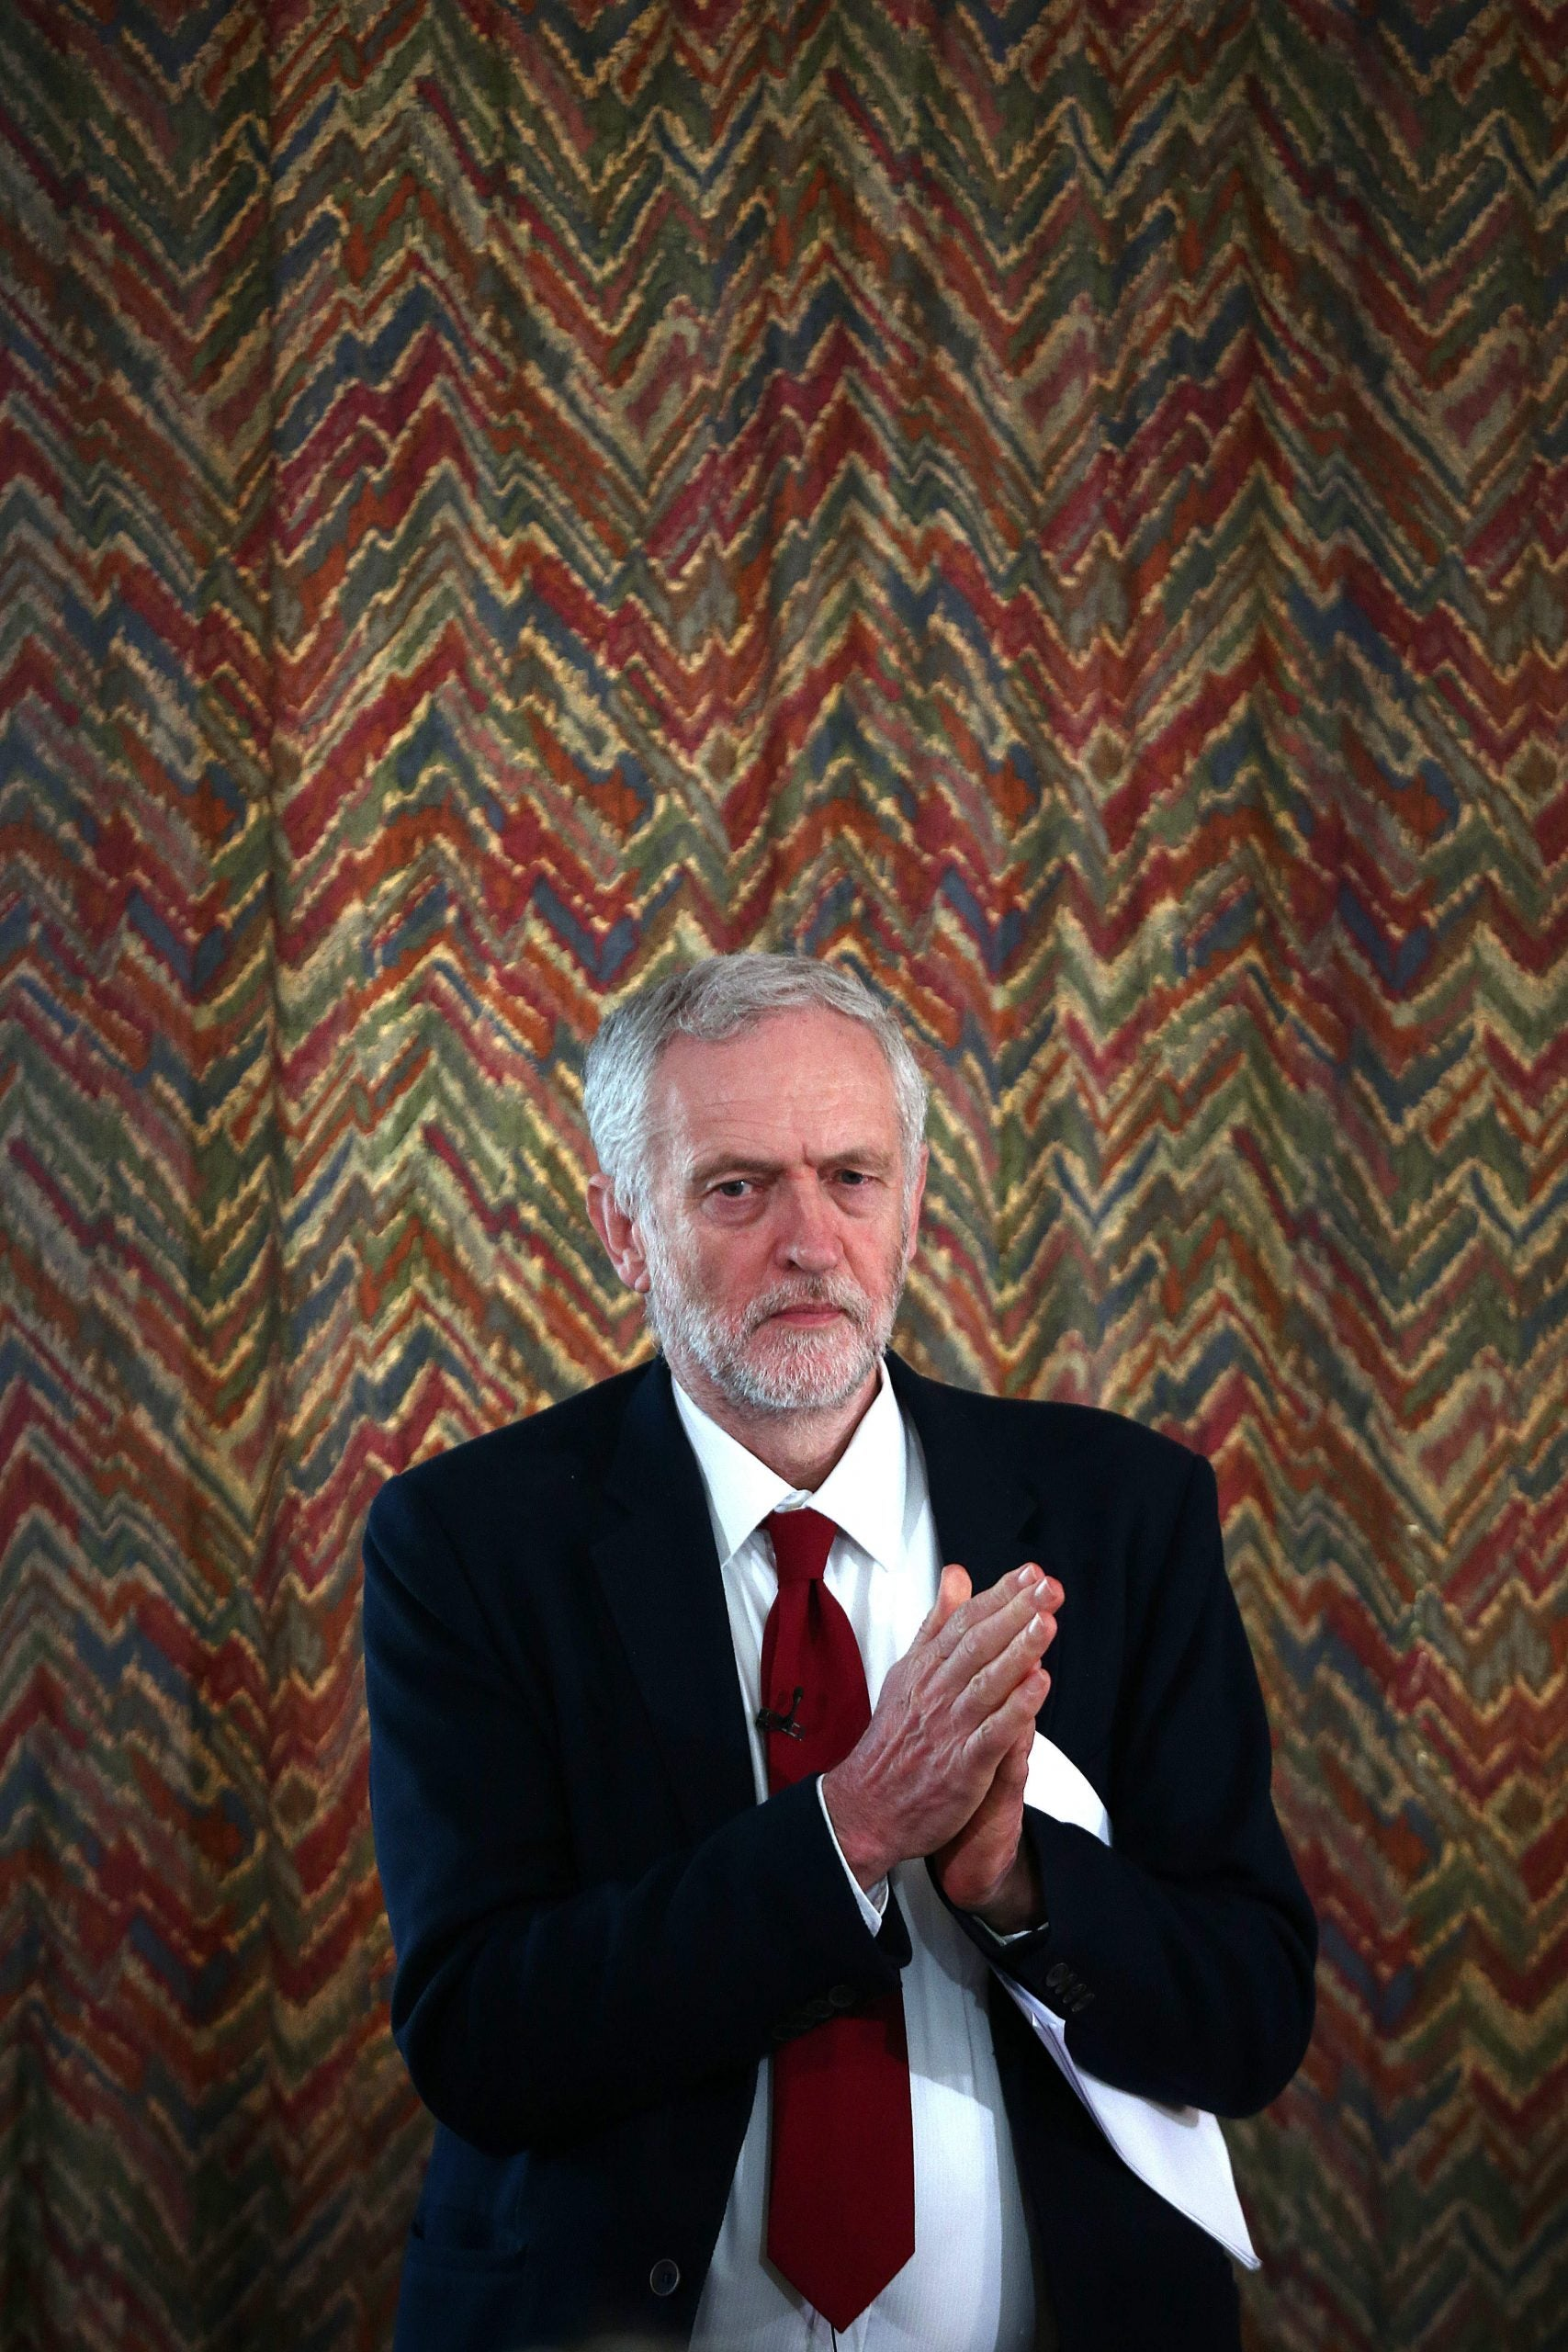 The stench of decay and failure coming from the Labour Party is now overwhelming